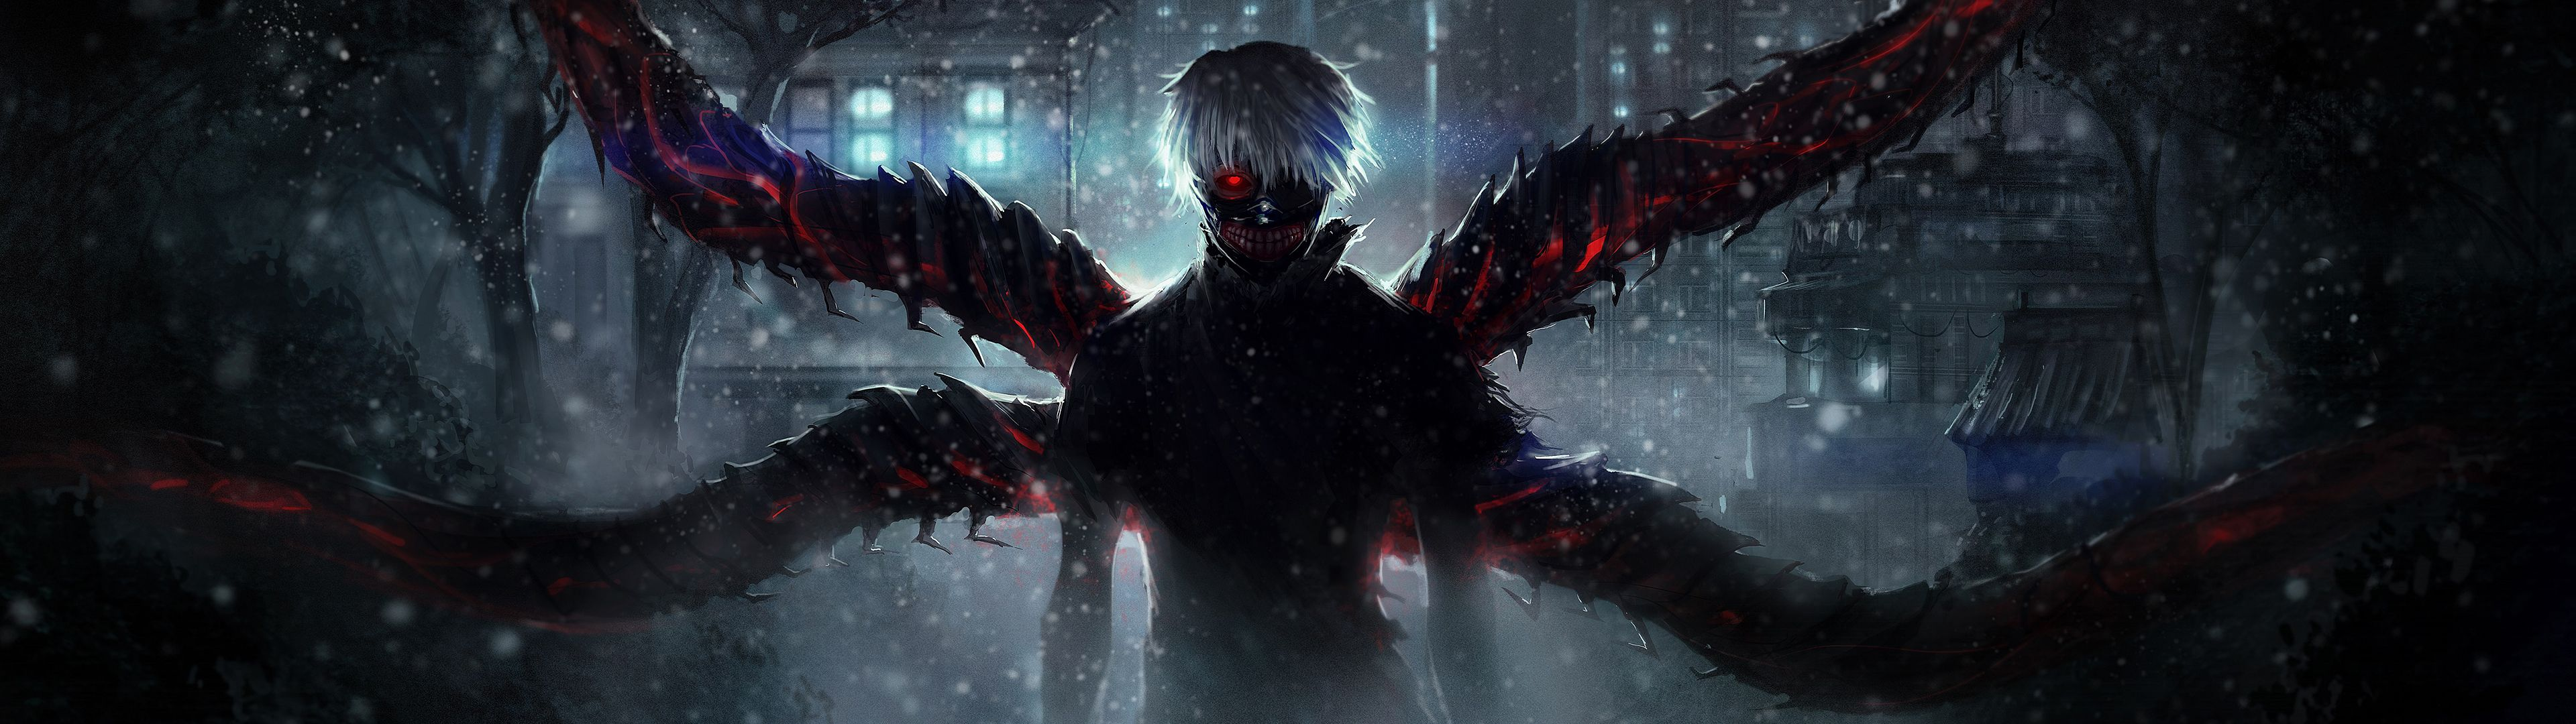 3840x1080 20+ Awesome Dual Monitor Anime Wallpaper Collection